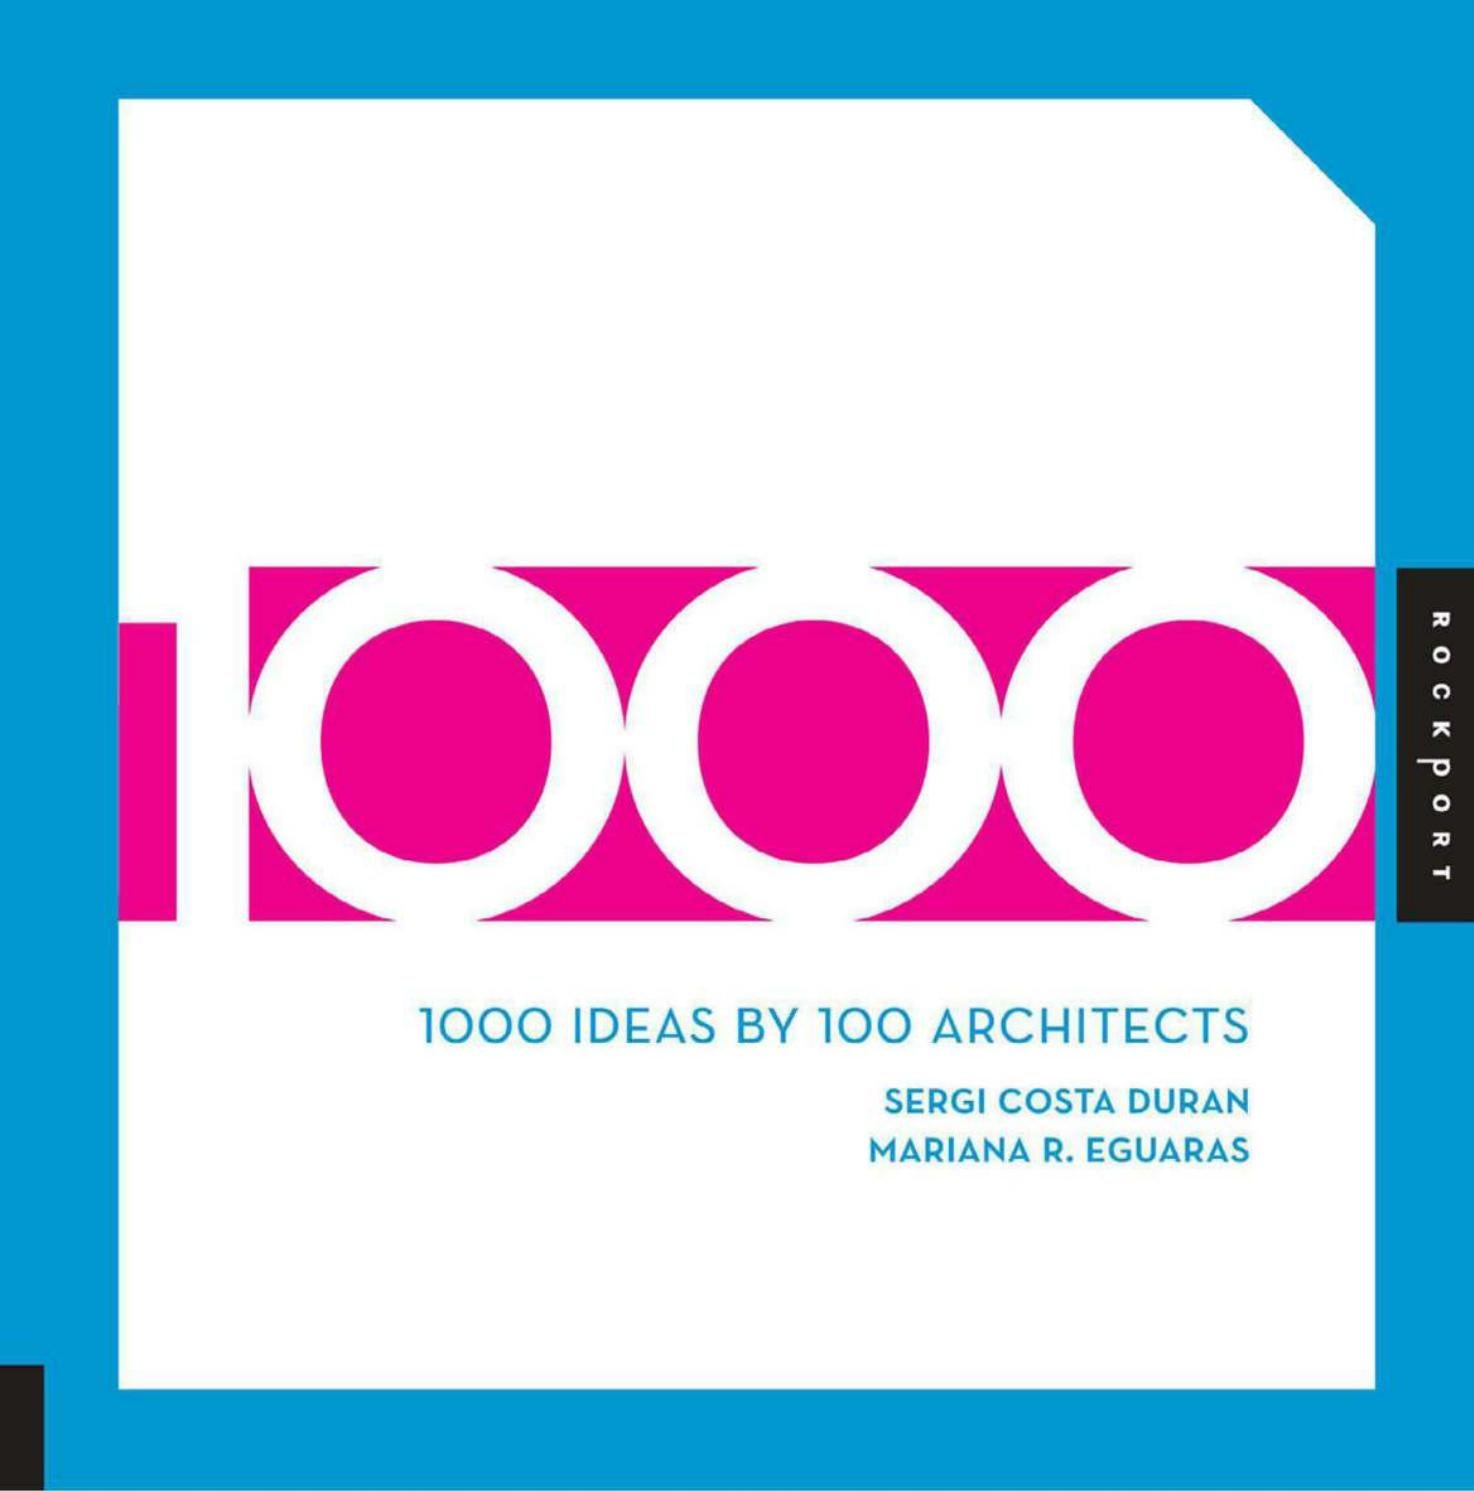 1000 Ideas By 100 Architects Sach Kien Truc Issuu Origami Dinosaur Diagrams Claudia39s Room Pinterest